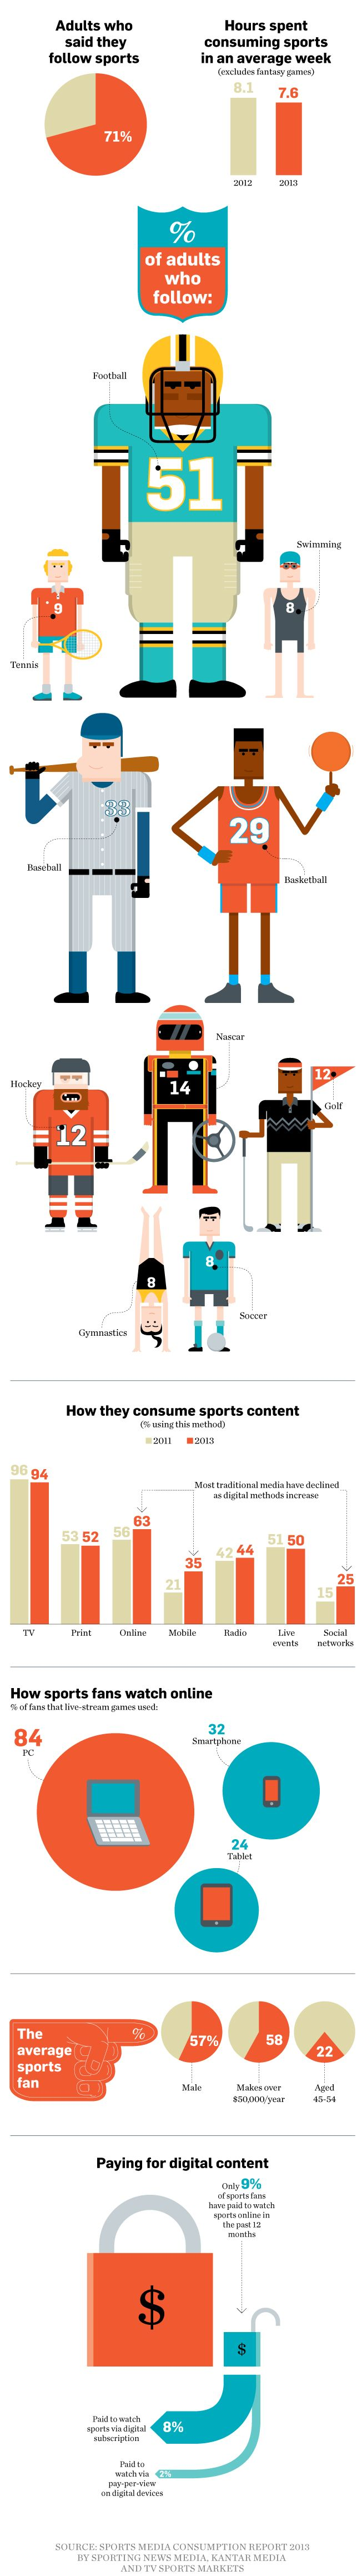 #Sports #Fans Slowly Move From #TV to the #Internet. But only 9% pay for what they see By Lucia Moses on Adweek #digisport